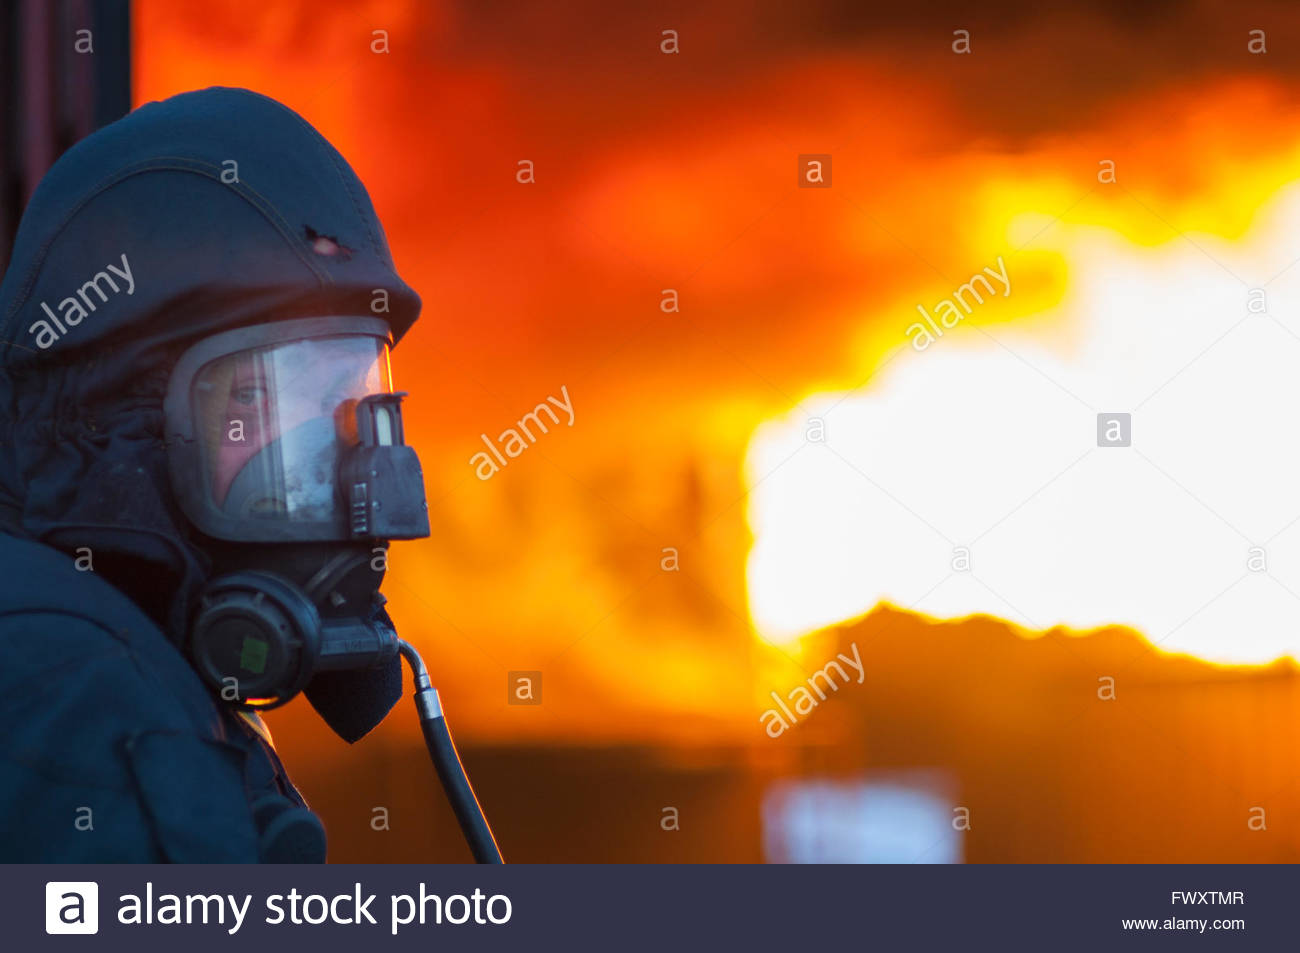 Sweden, Sodermanland, Firefighter wearing protective mask with fire burning in background - Stock Image